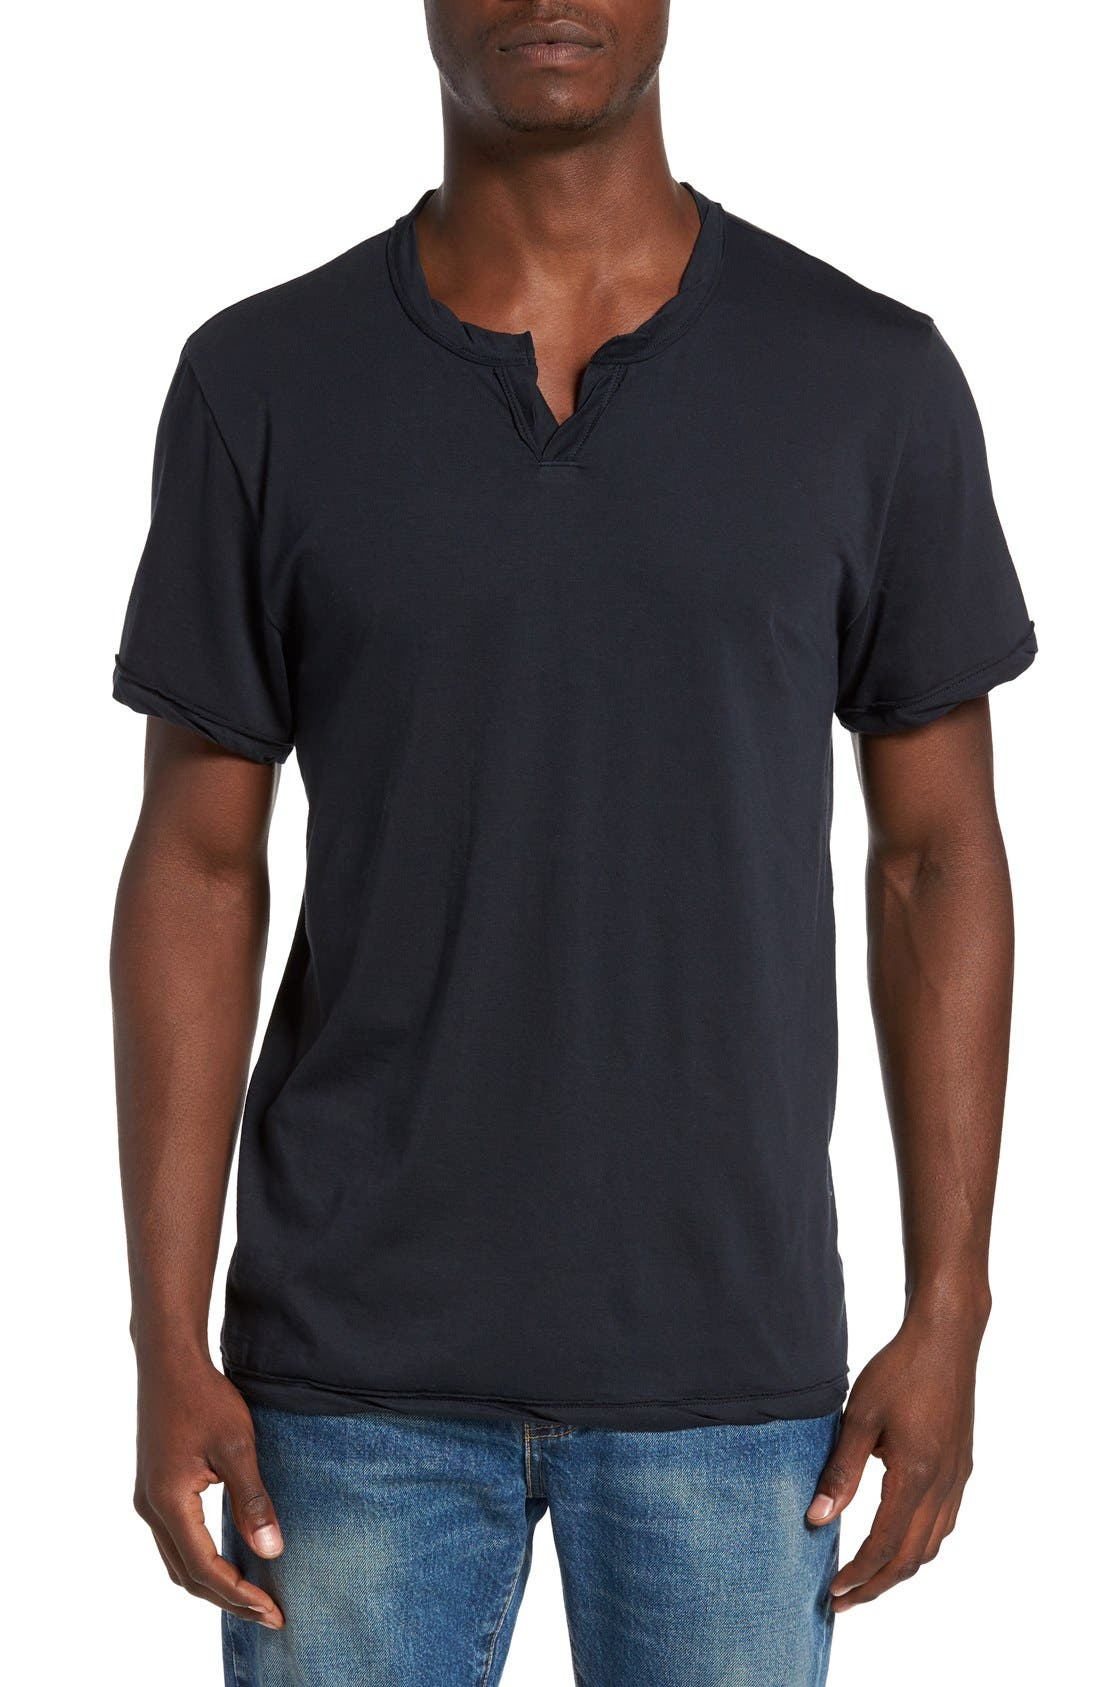 Alternate Image 1 Selected - Alternative Notched Neck Organic Cotton T-Shirt